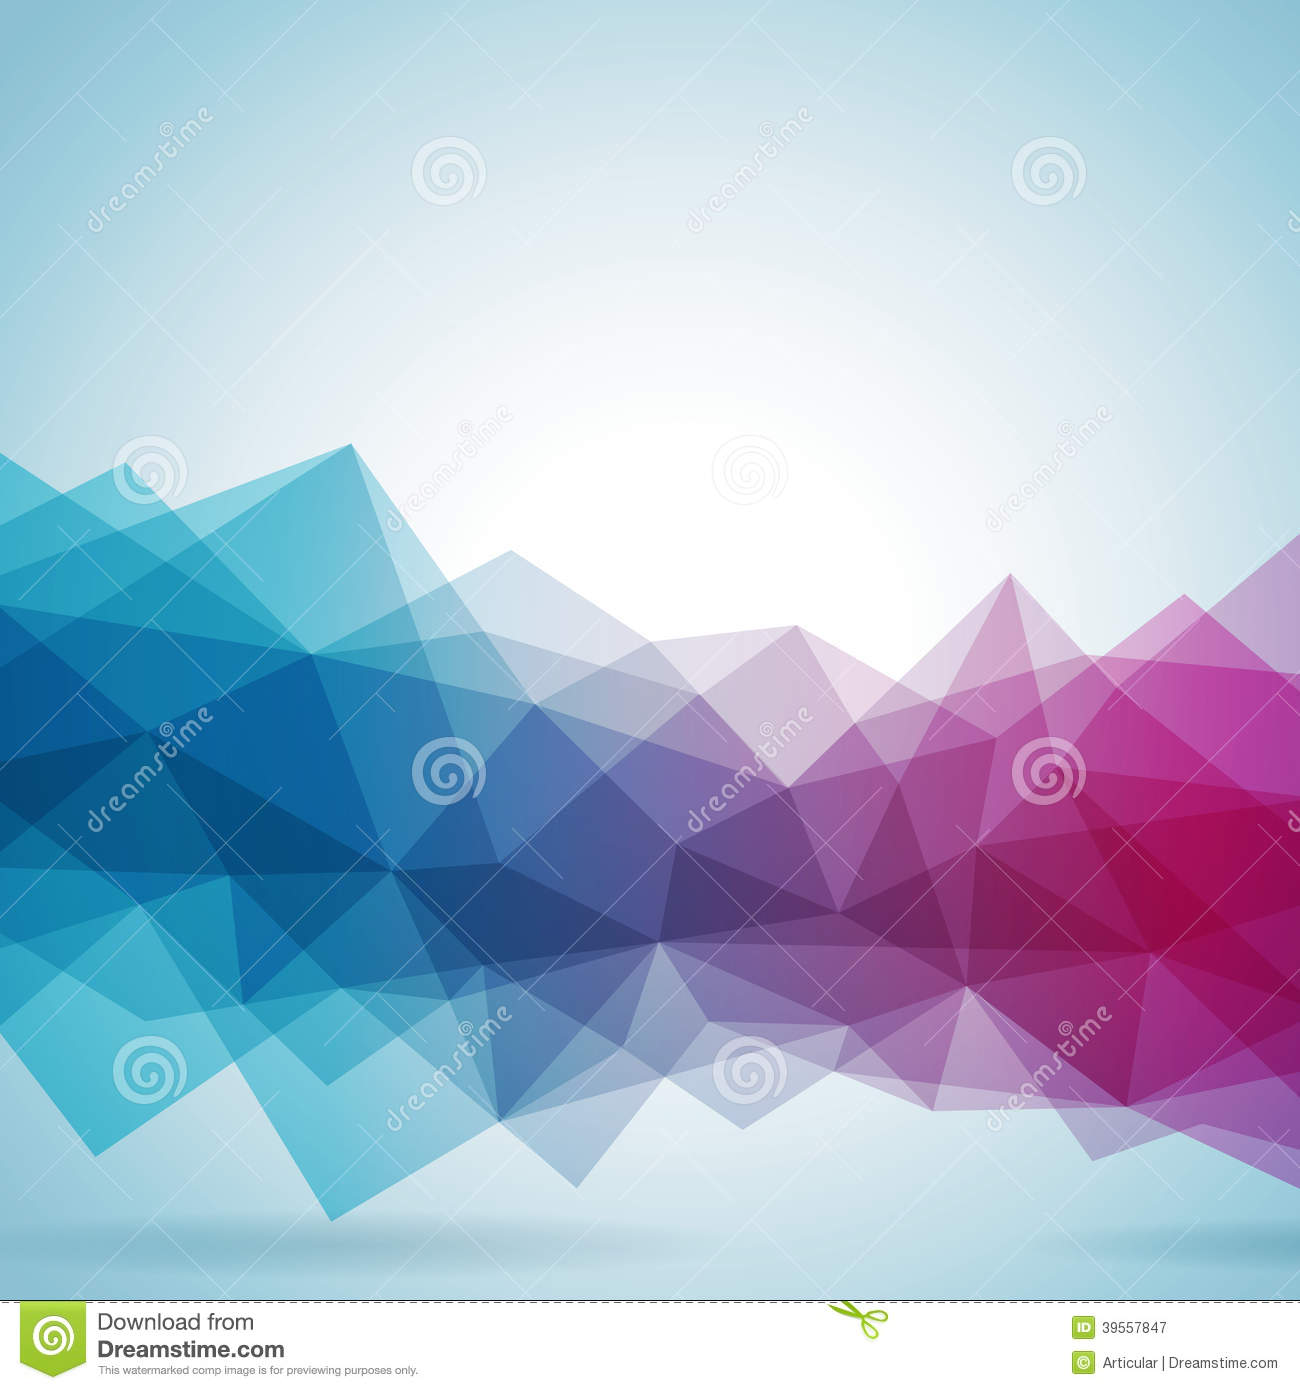 abstract vector geometric background design stock vector illustration of concept graphic 39557847 dreamstime com